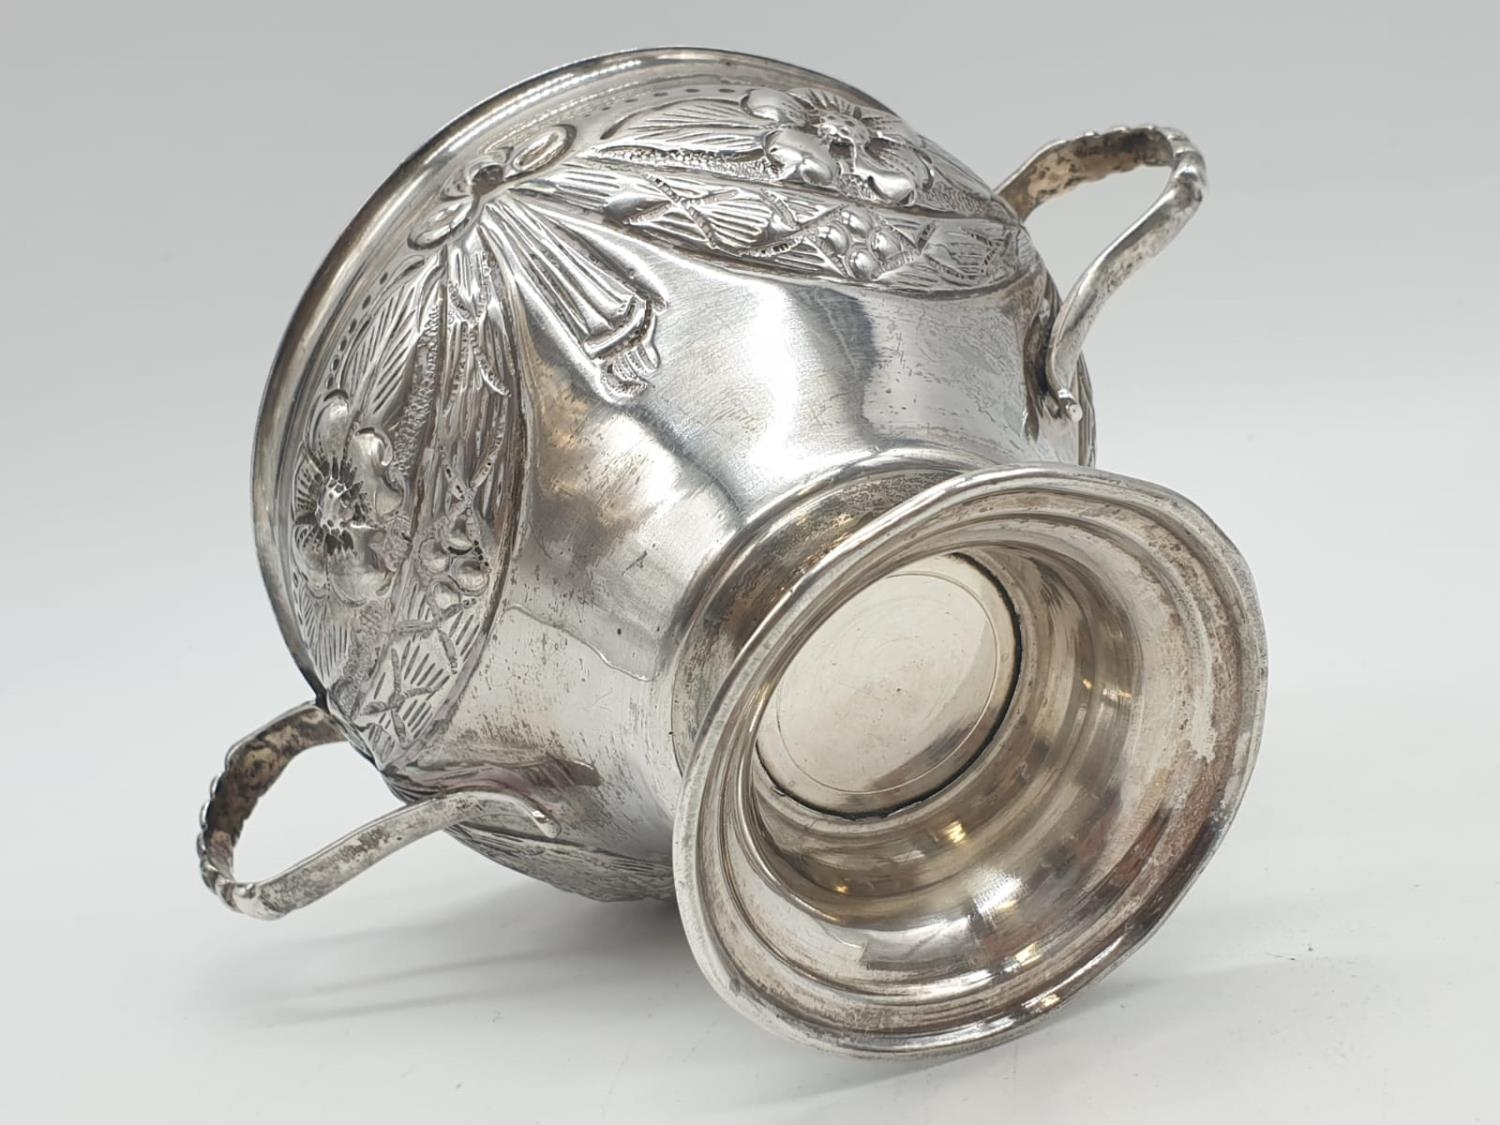 Silver CHALICE with handles. Hand decorated 8cm tall 9cm diameter. 129g - Image 7 of 7